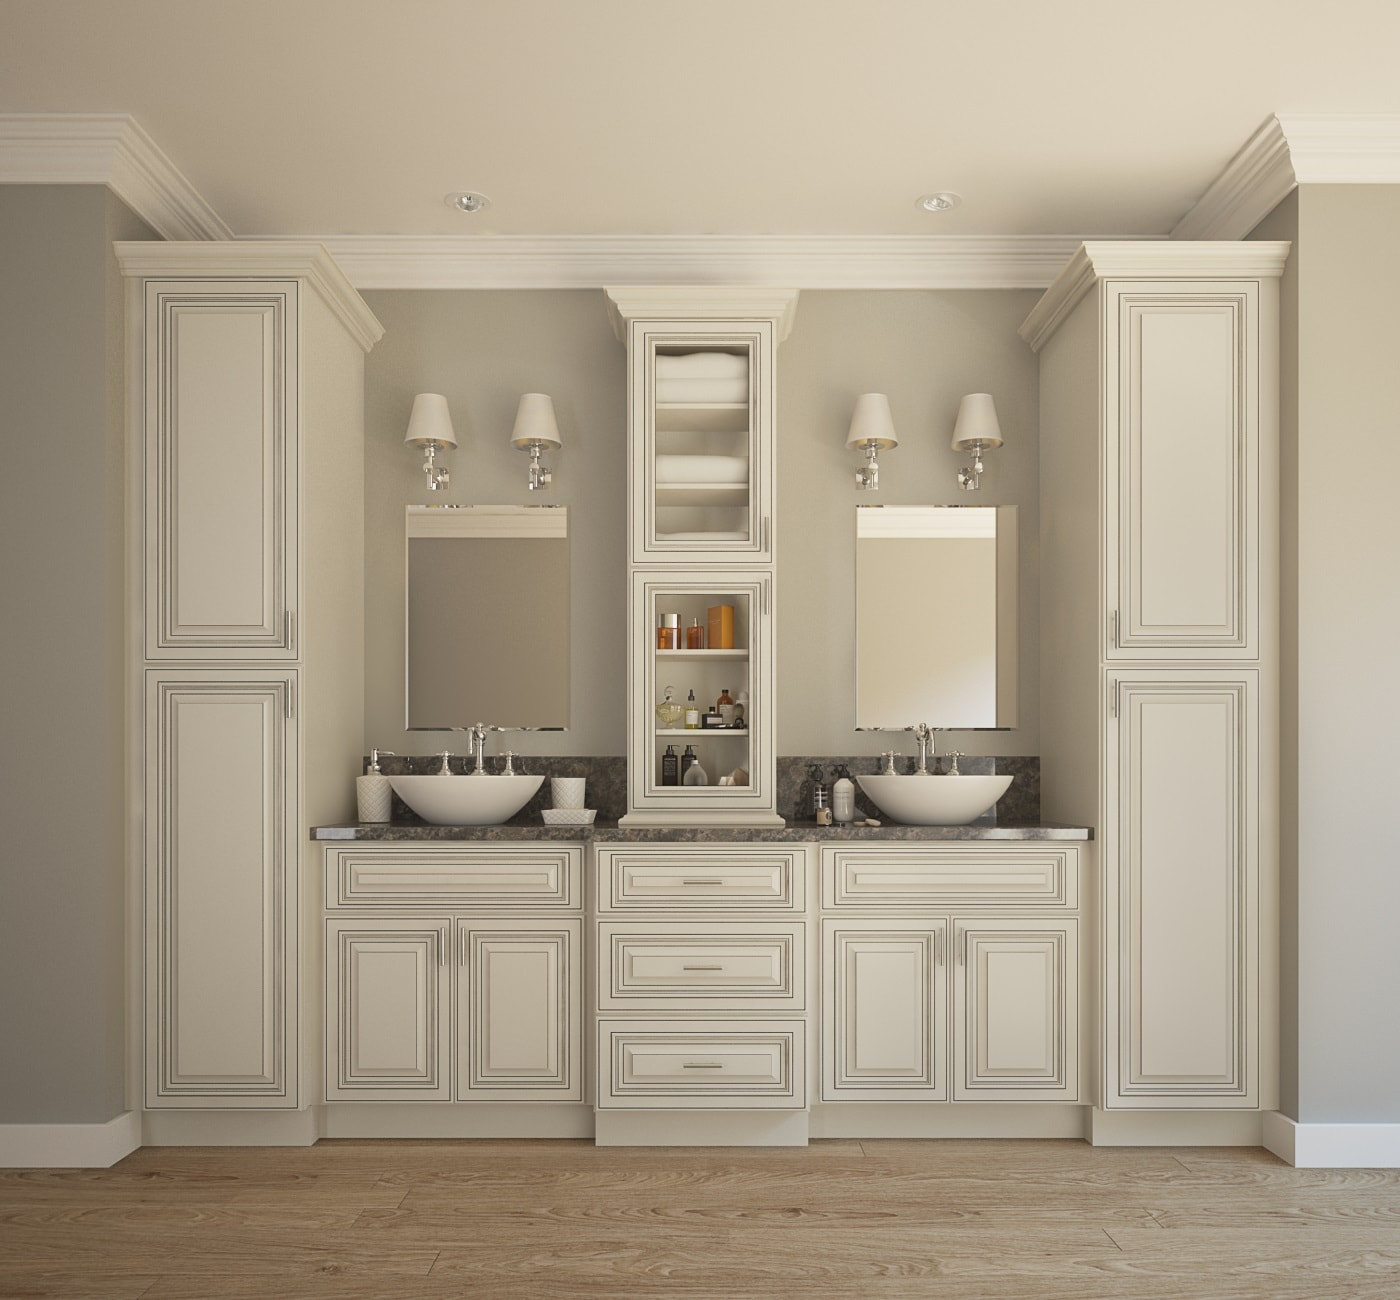 Where To Get Used Kitchen Cabinets: Pre-Assembled Bathroom Vanities